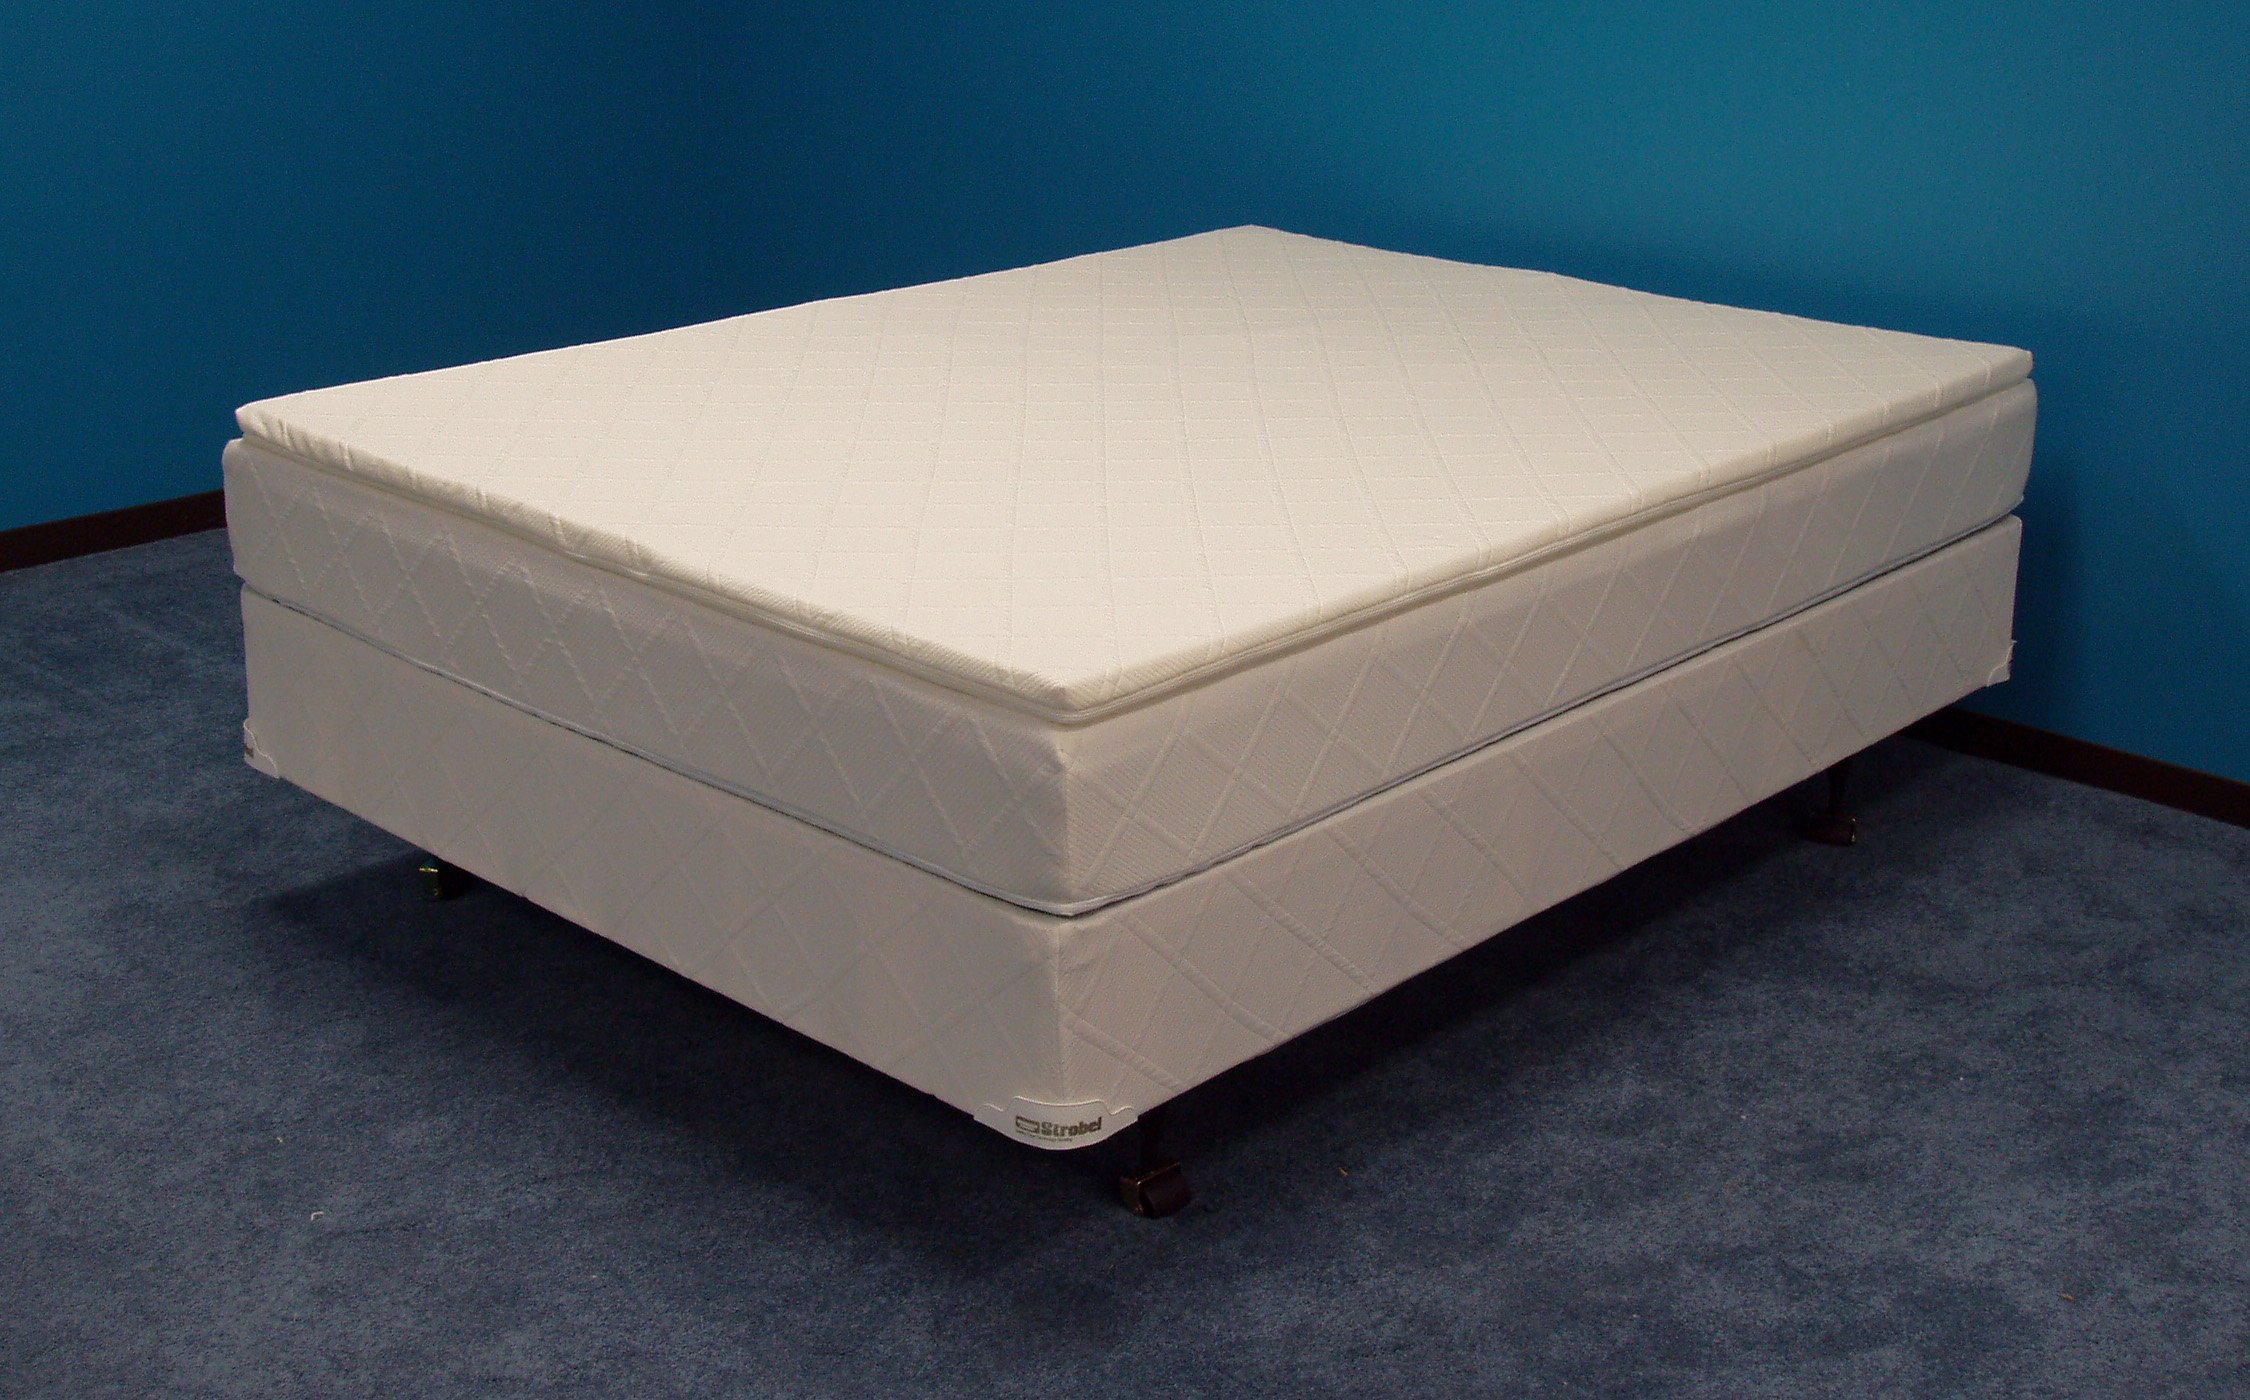 Strobel Organic ''Behave Yourself'' Softside Waterbed Patented Leak-Proof, 7'' Fill, with 1.5'' Soy Foam Pillowtop, Top Only, Full by Strobel Organic